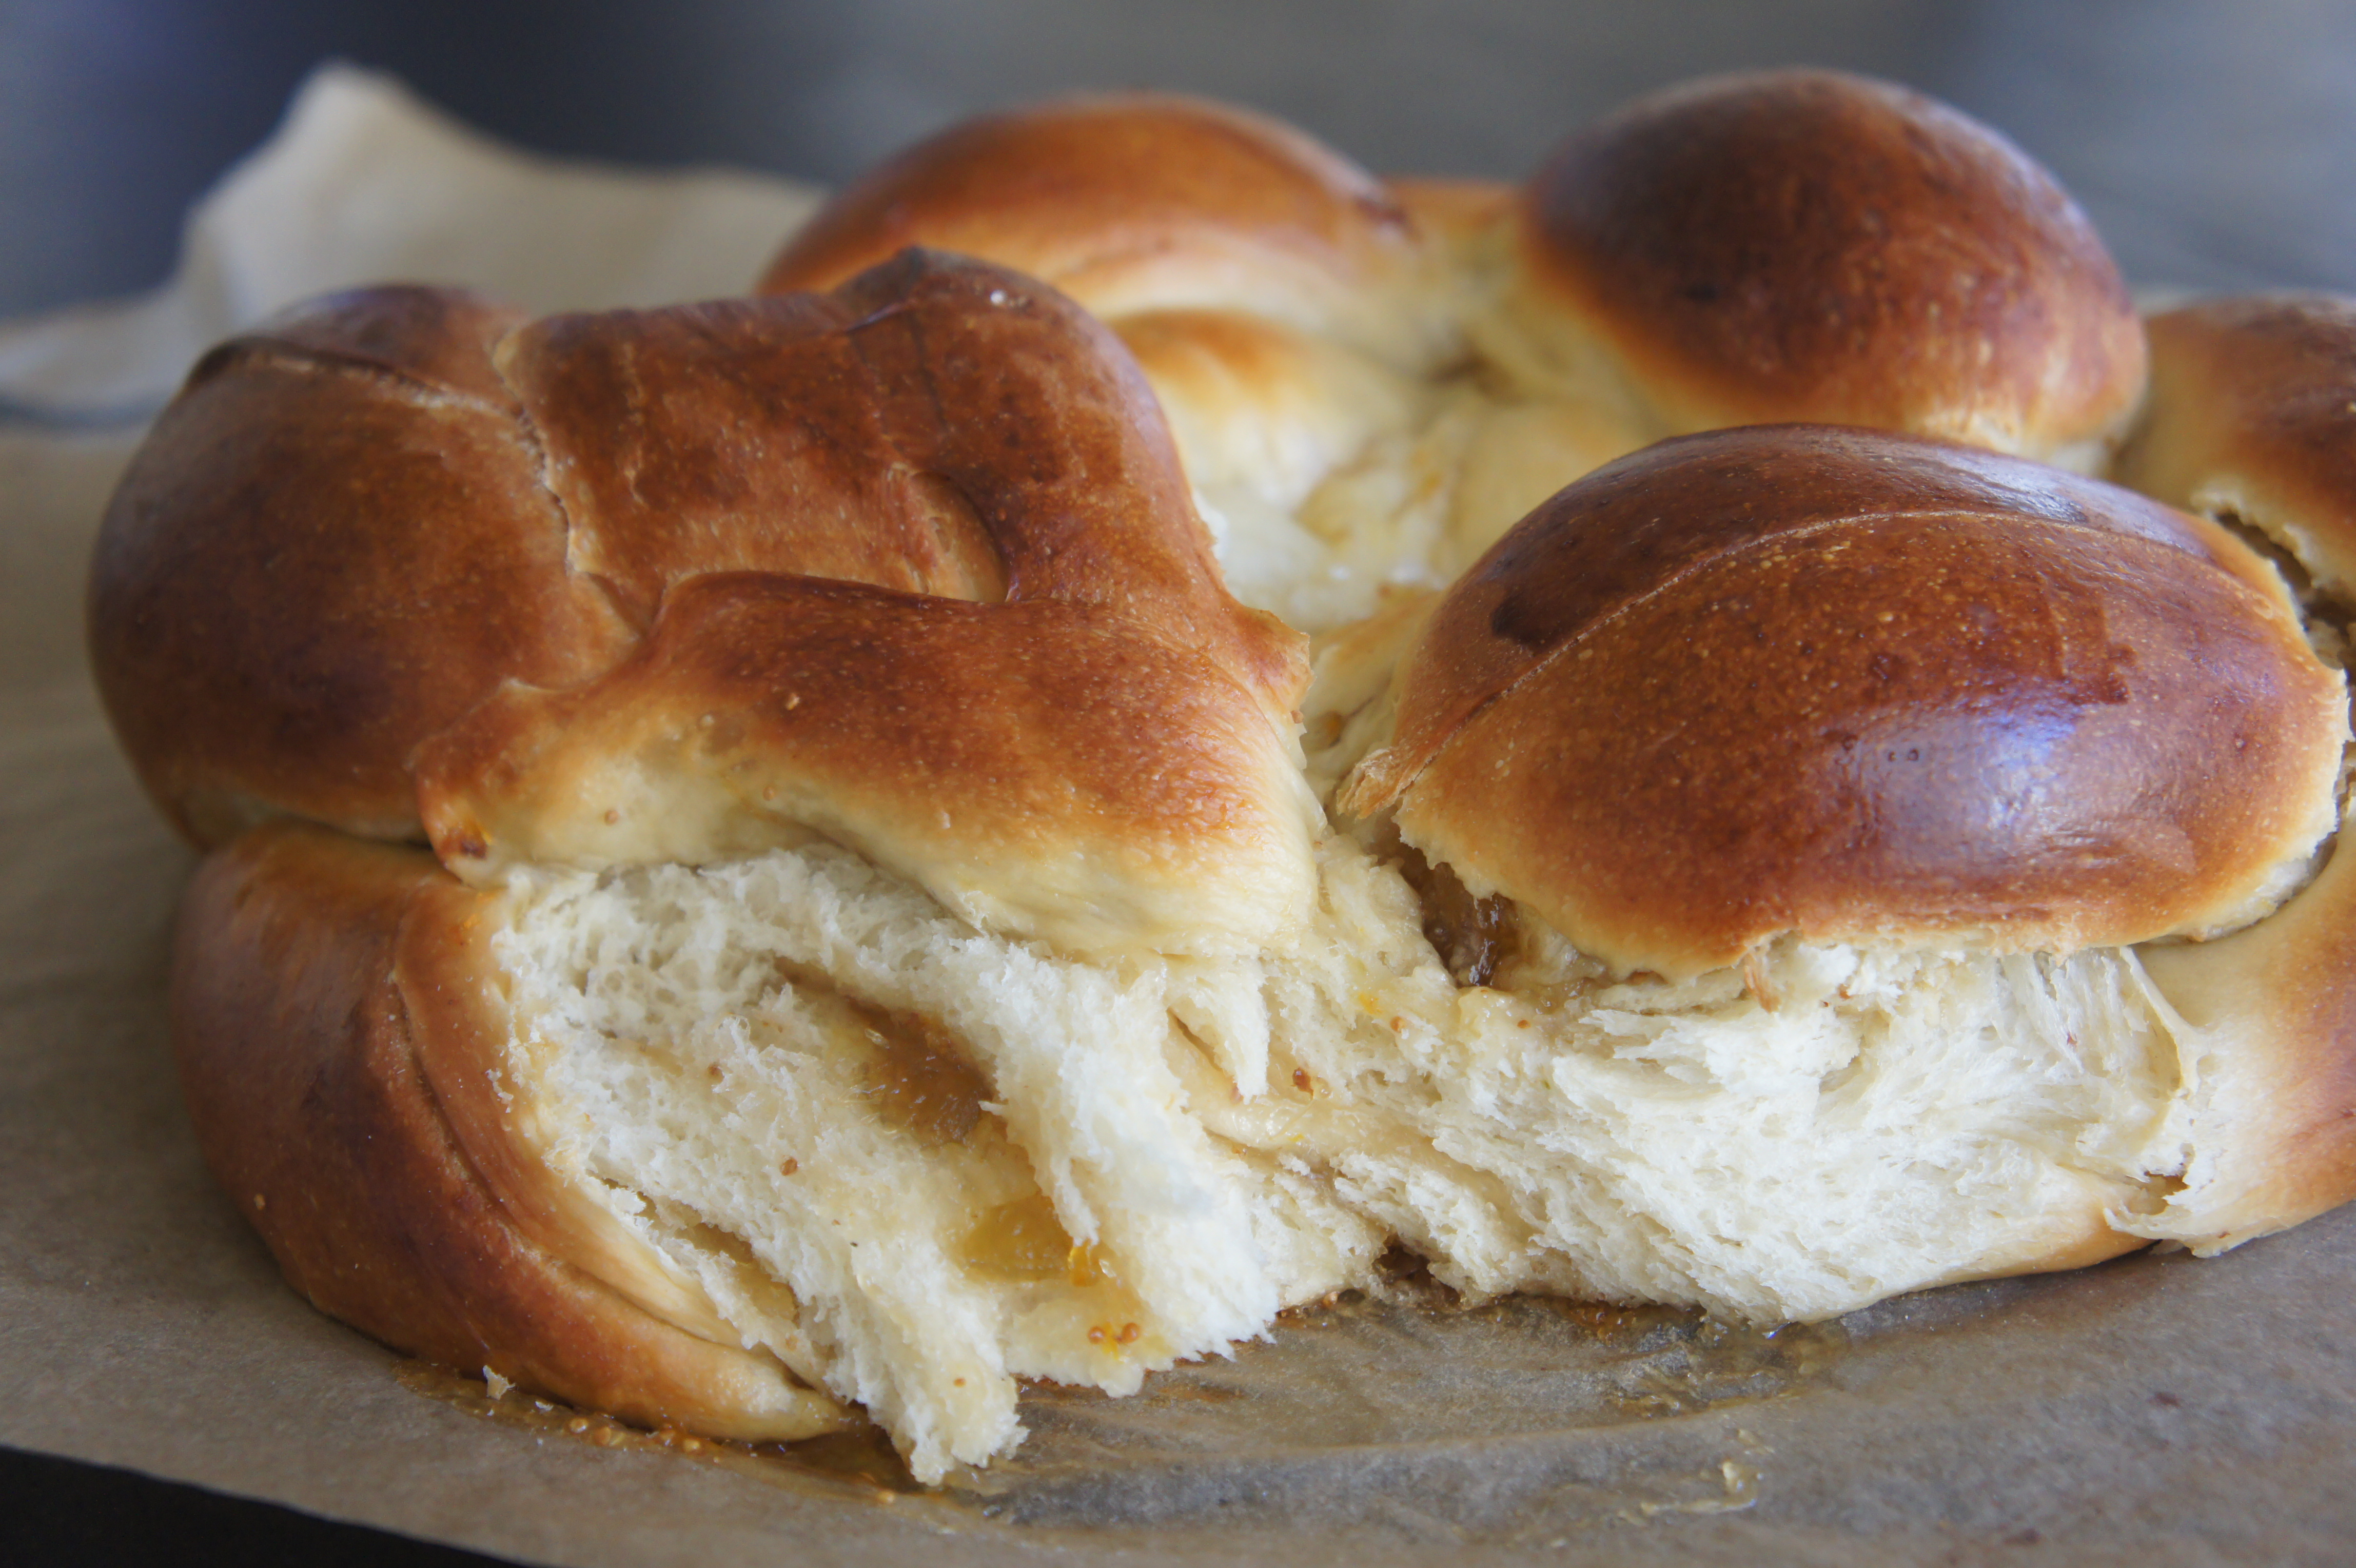 Fig, Olive Oil, and Sea Salt Challah | Cookies and Candids